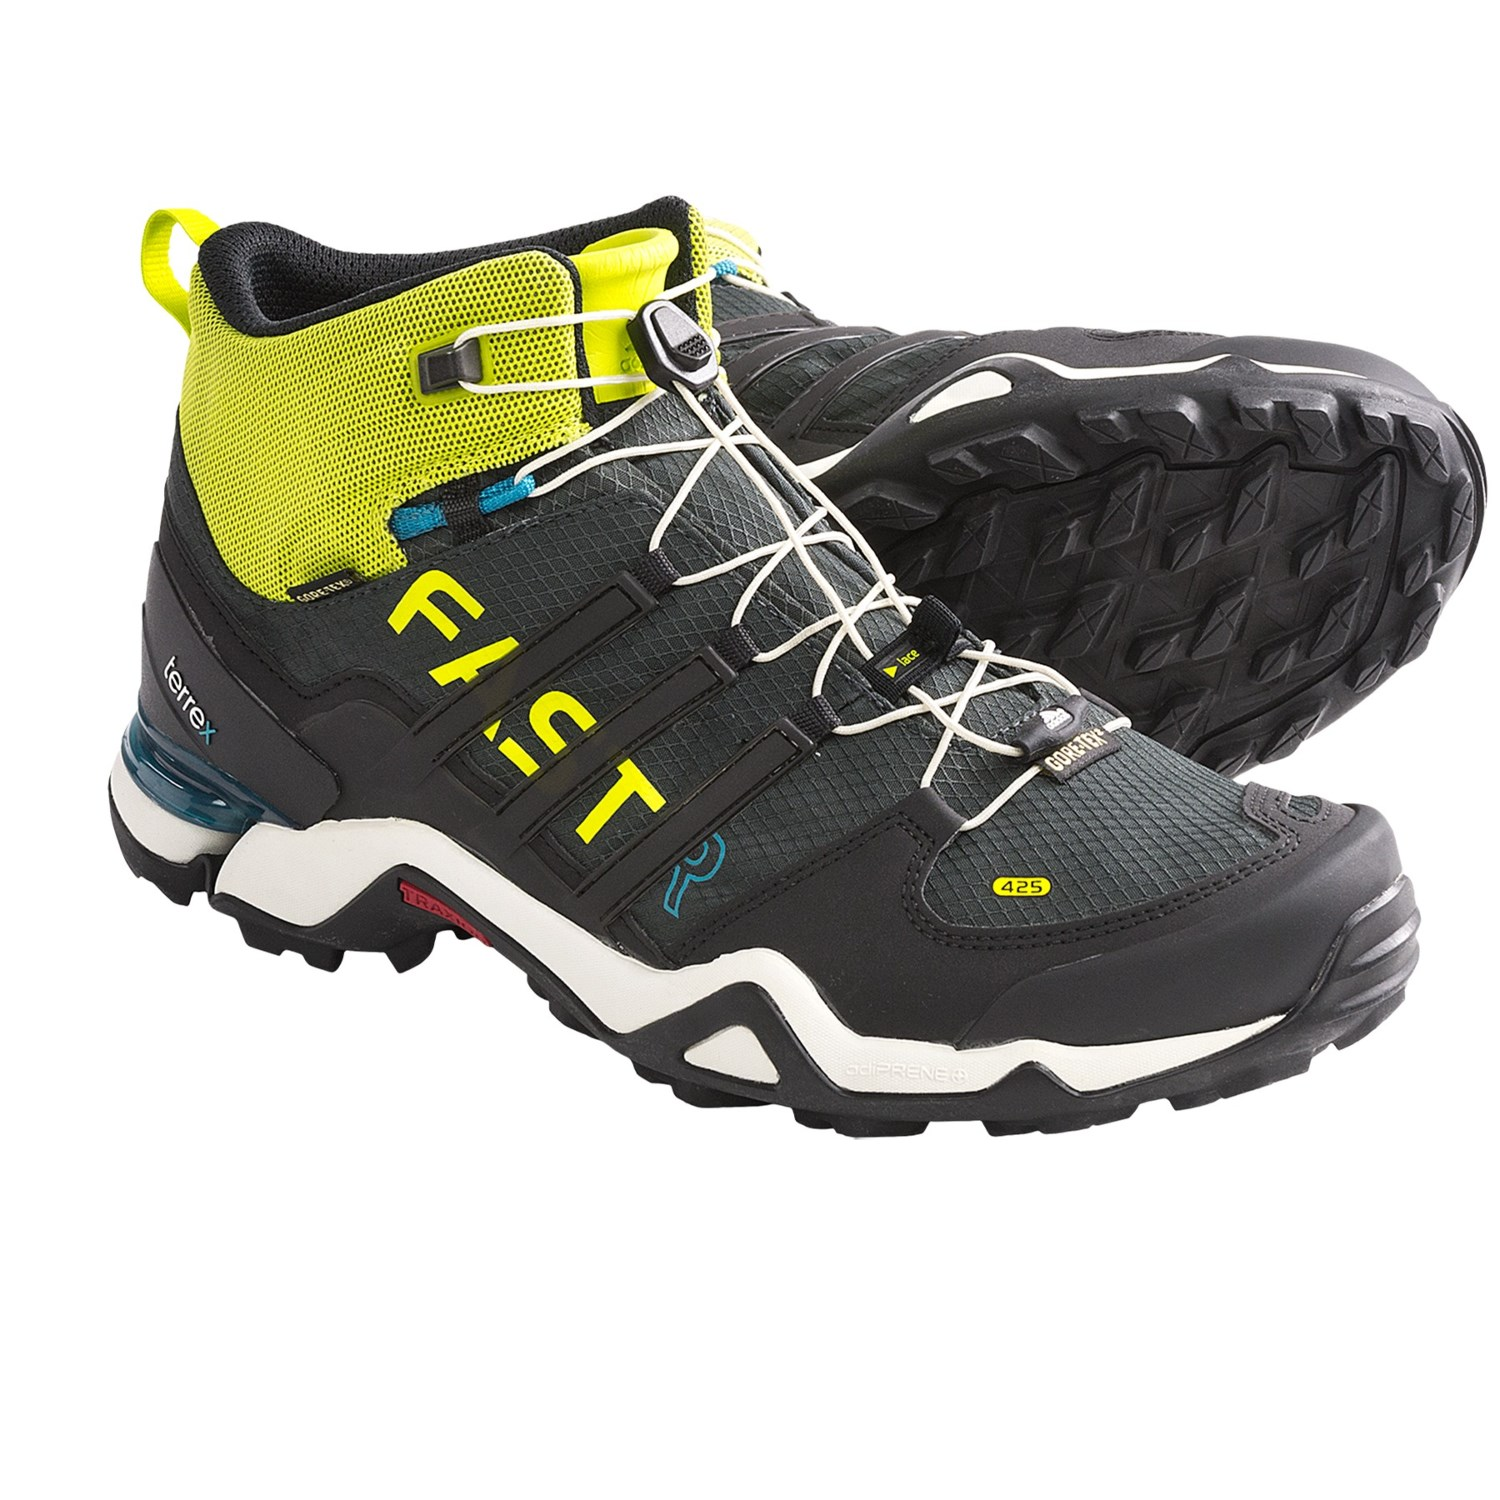 adidas outdoor terrex fast r mid gore tex hiking shoes. Black Bedroom Furniture Sets. Home Design Ideas